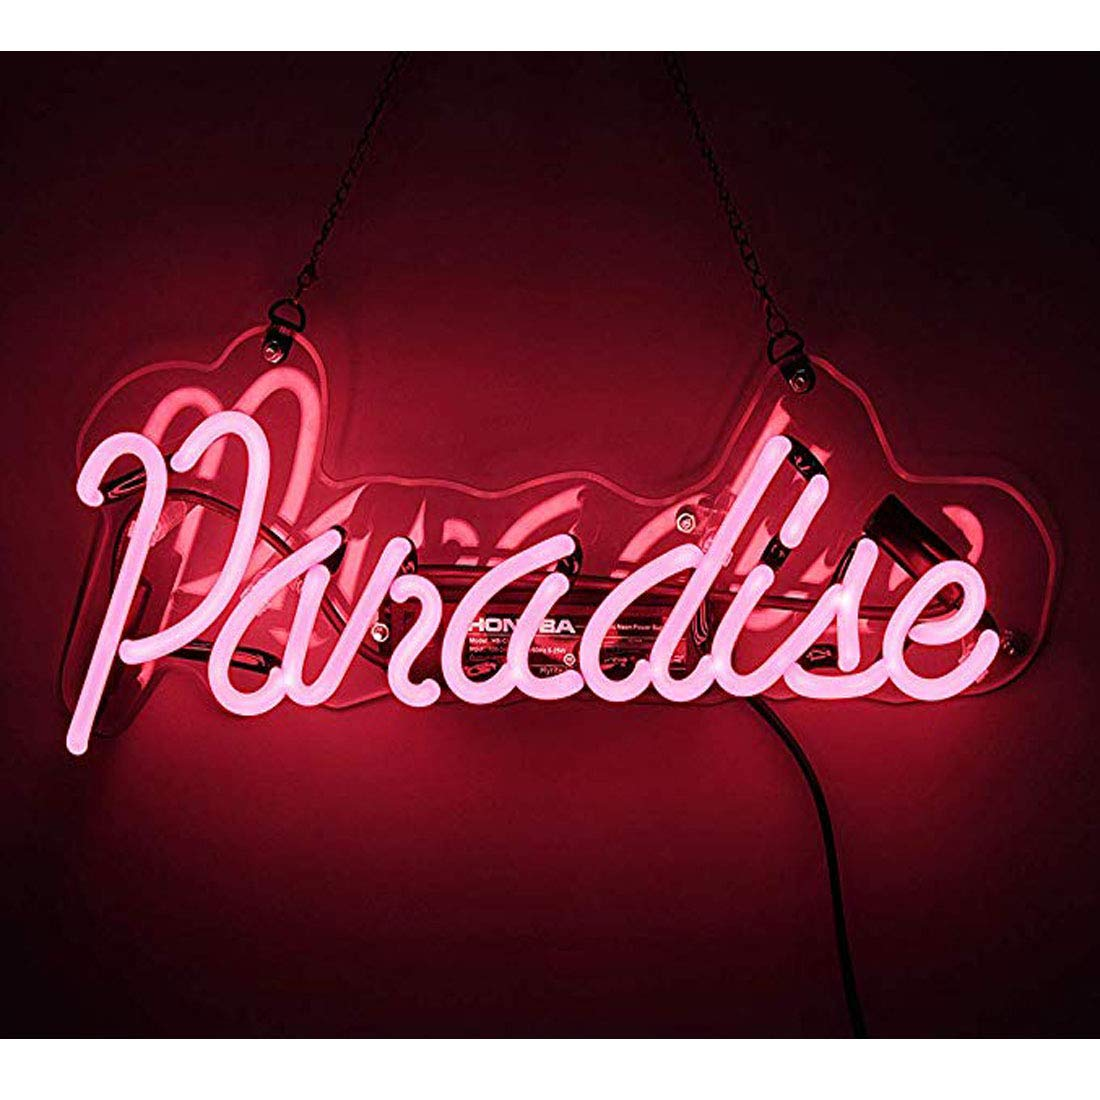 Neon Light Sign Paradise Neon Bar Sign Handmade Glass Neon Sign for Gift Pub Recreation Room Party Cafe Store Bedroom Wall Decor Lamp 14 x 6 inch Pink